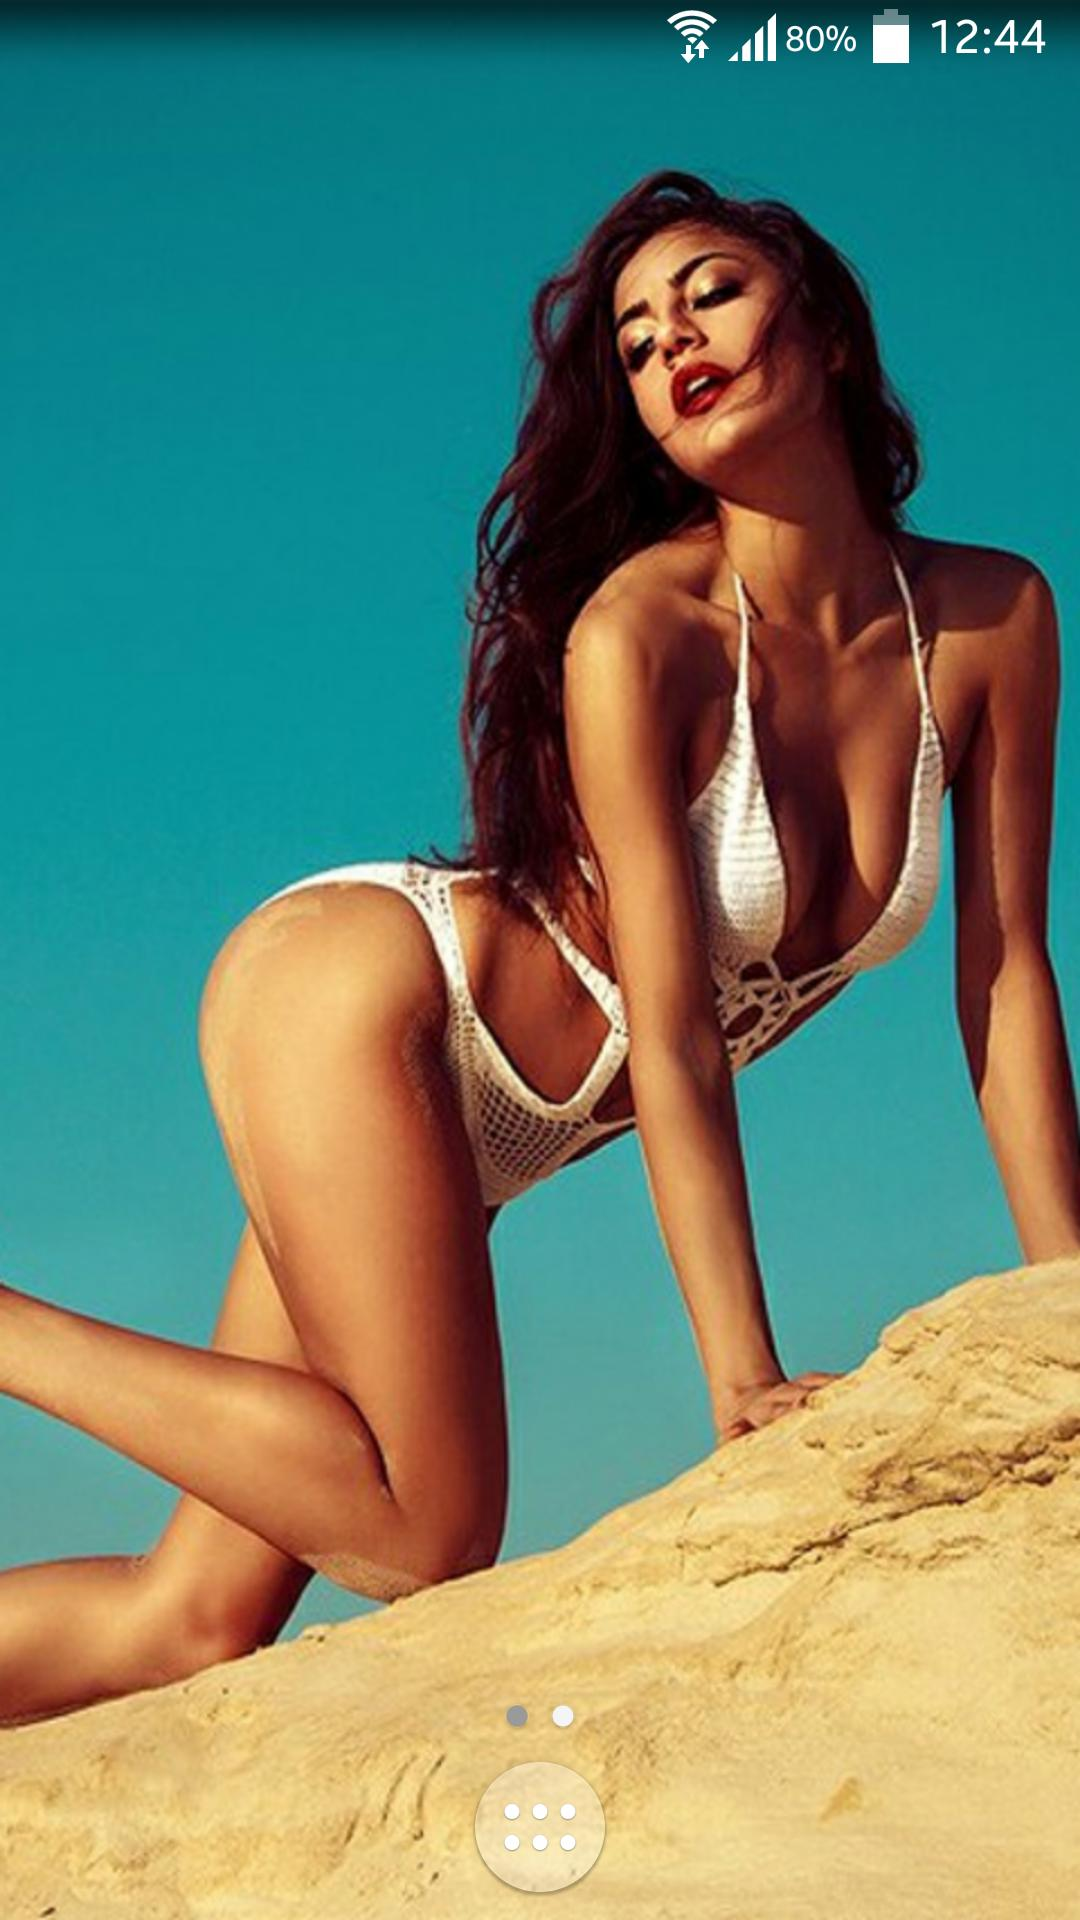 Babe Hd bikini girls swimsuit babe hd for android - apk download